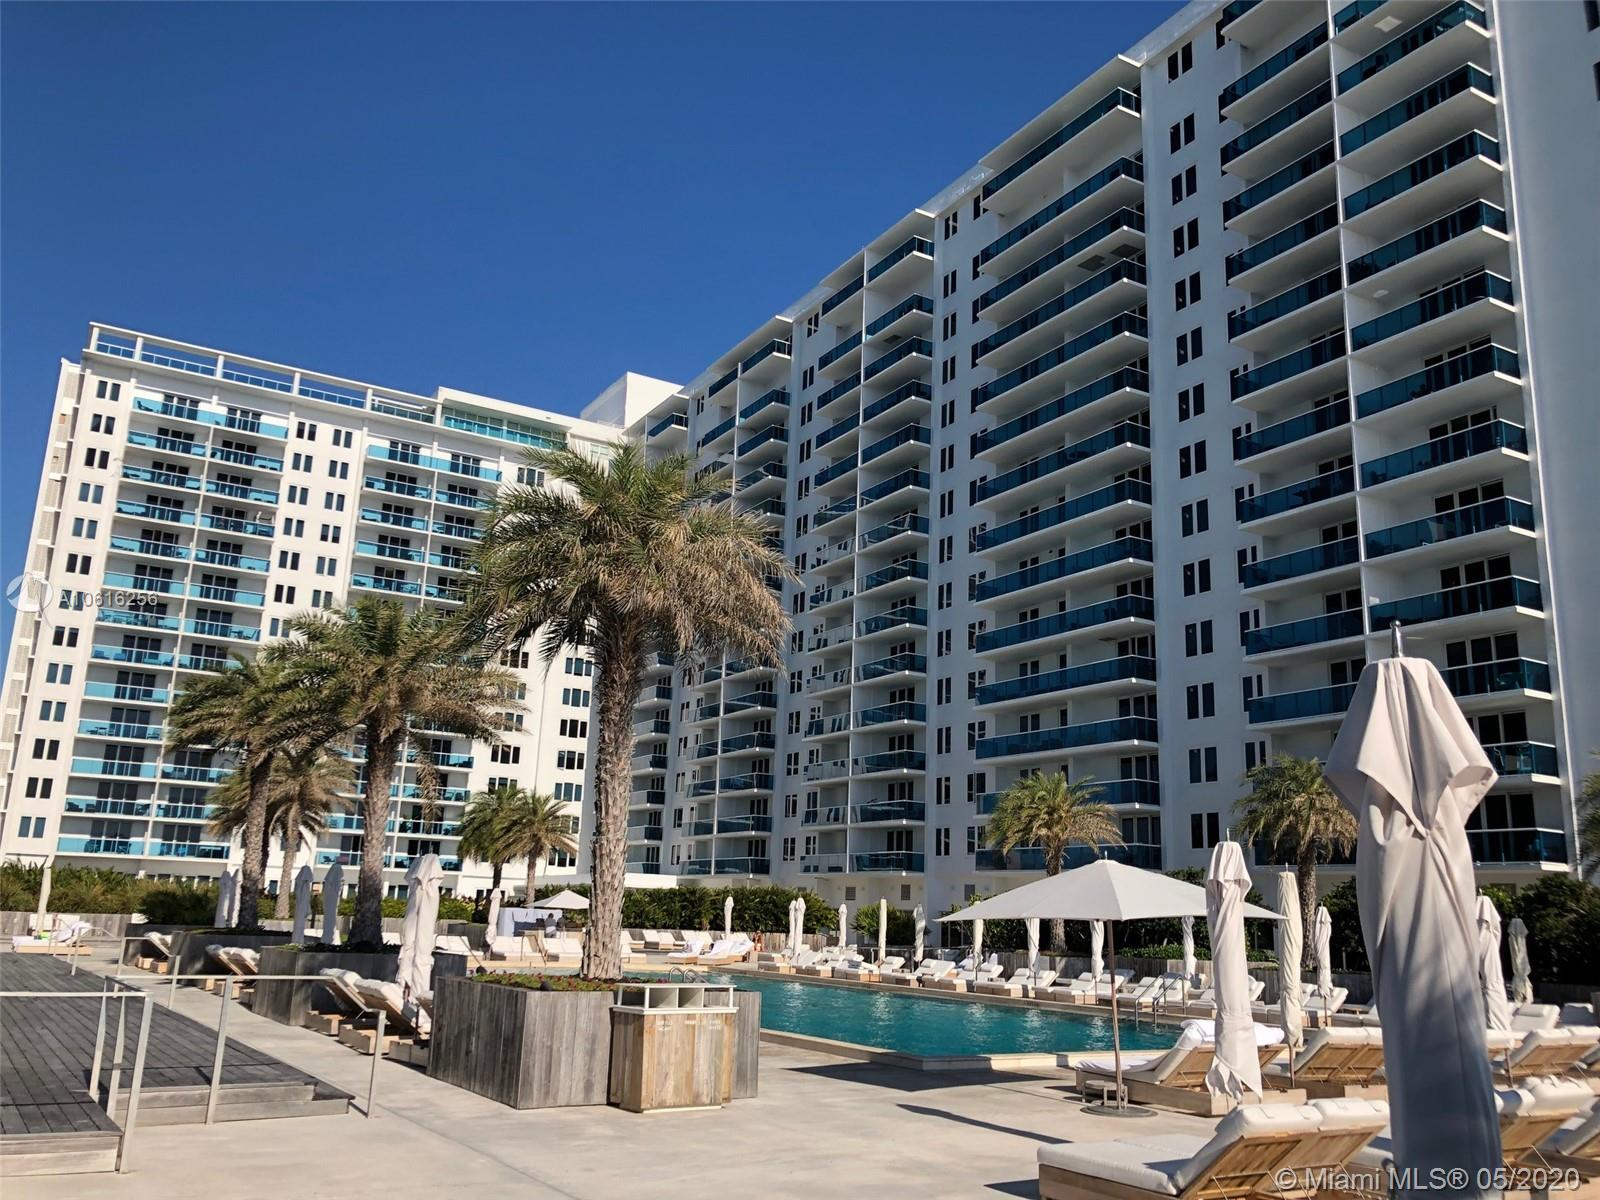 Roney Palace #737 - 2301 COLLINS AV #737, Miami Beach, FL 33139